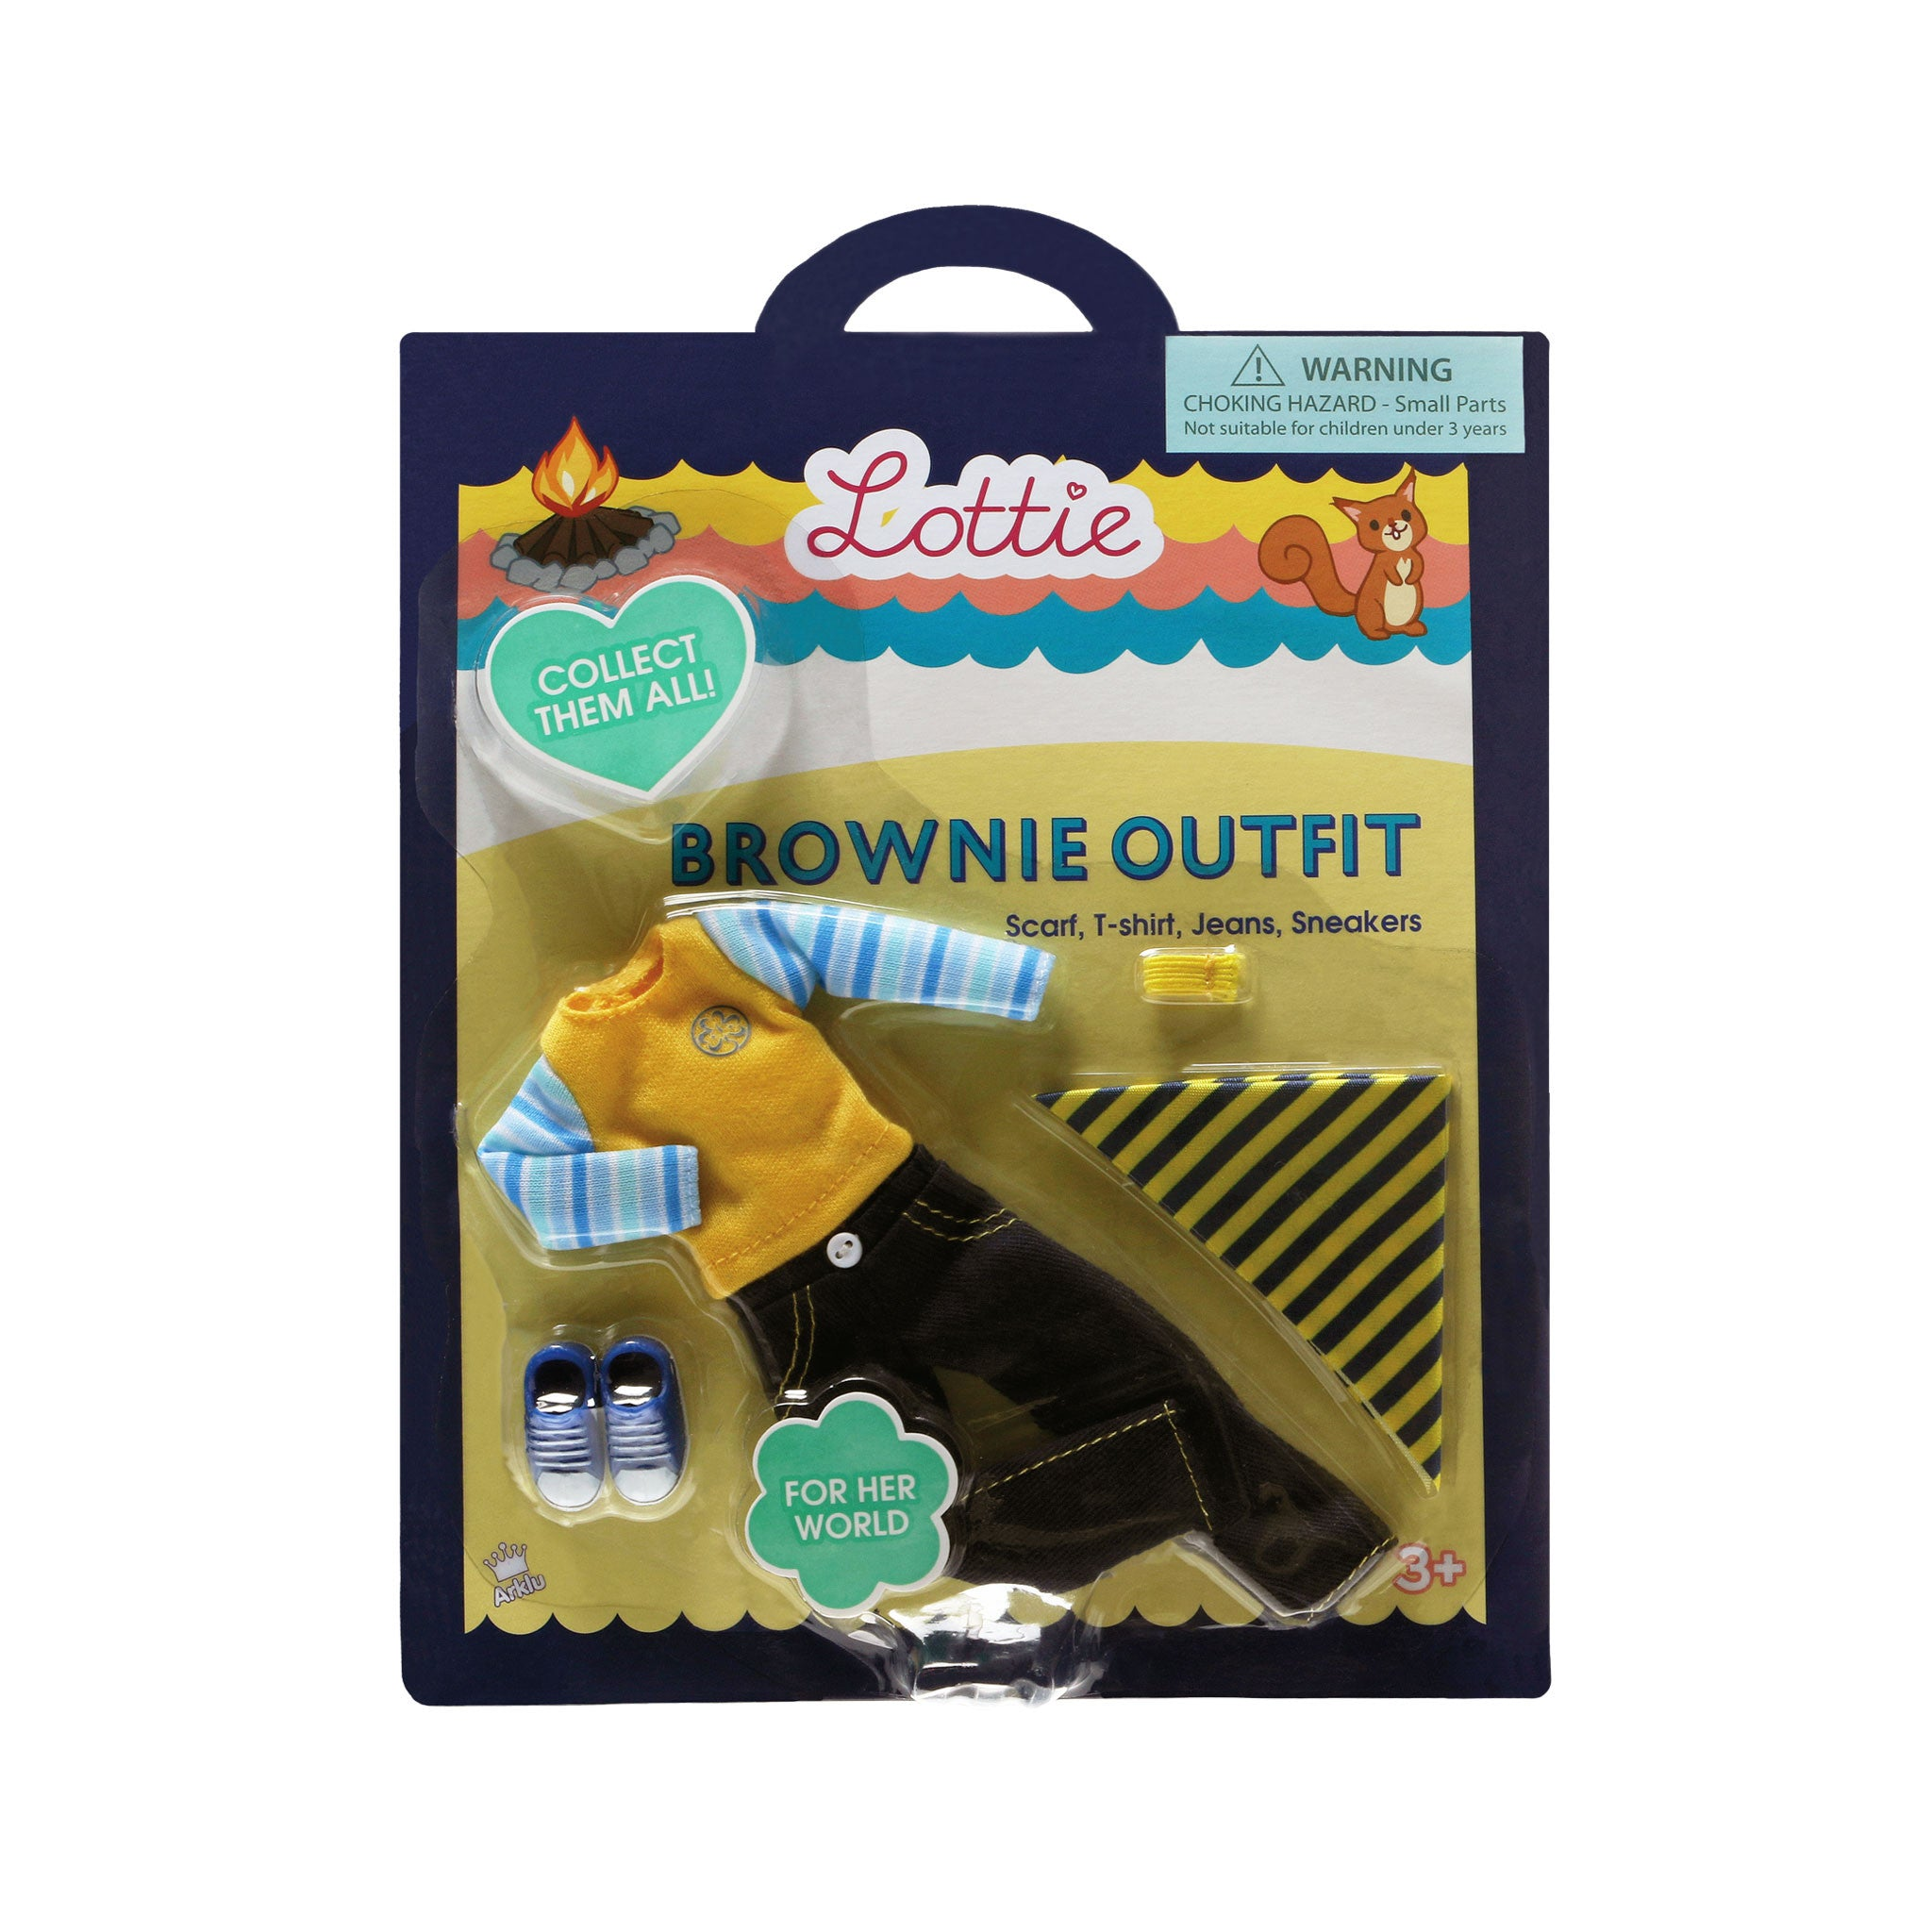 Brownie Outfit - Lottie Doll Accessory Set, in packaging